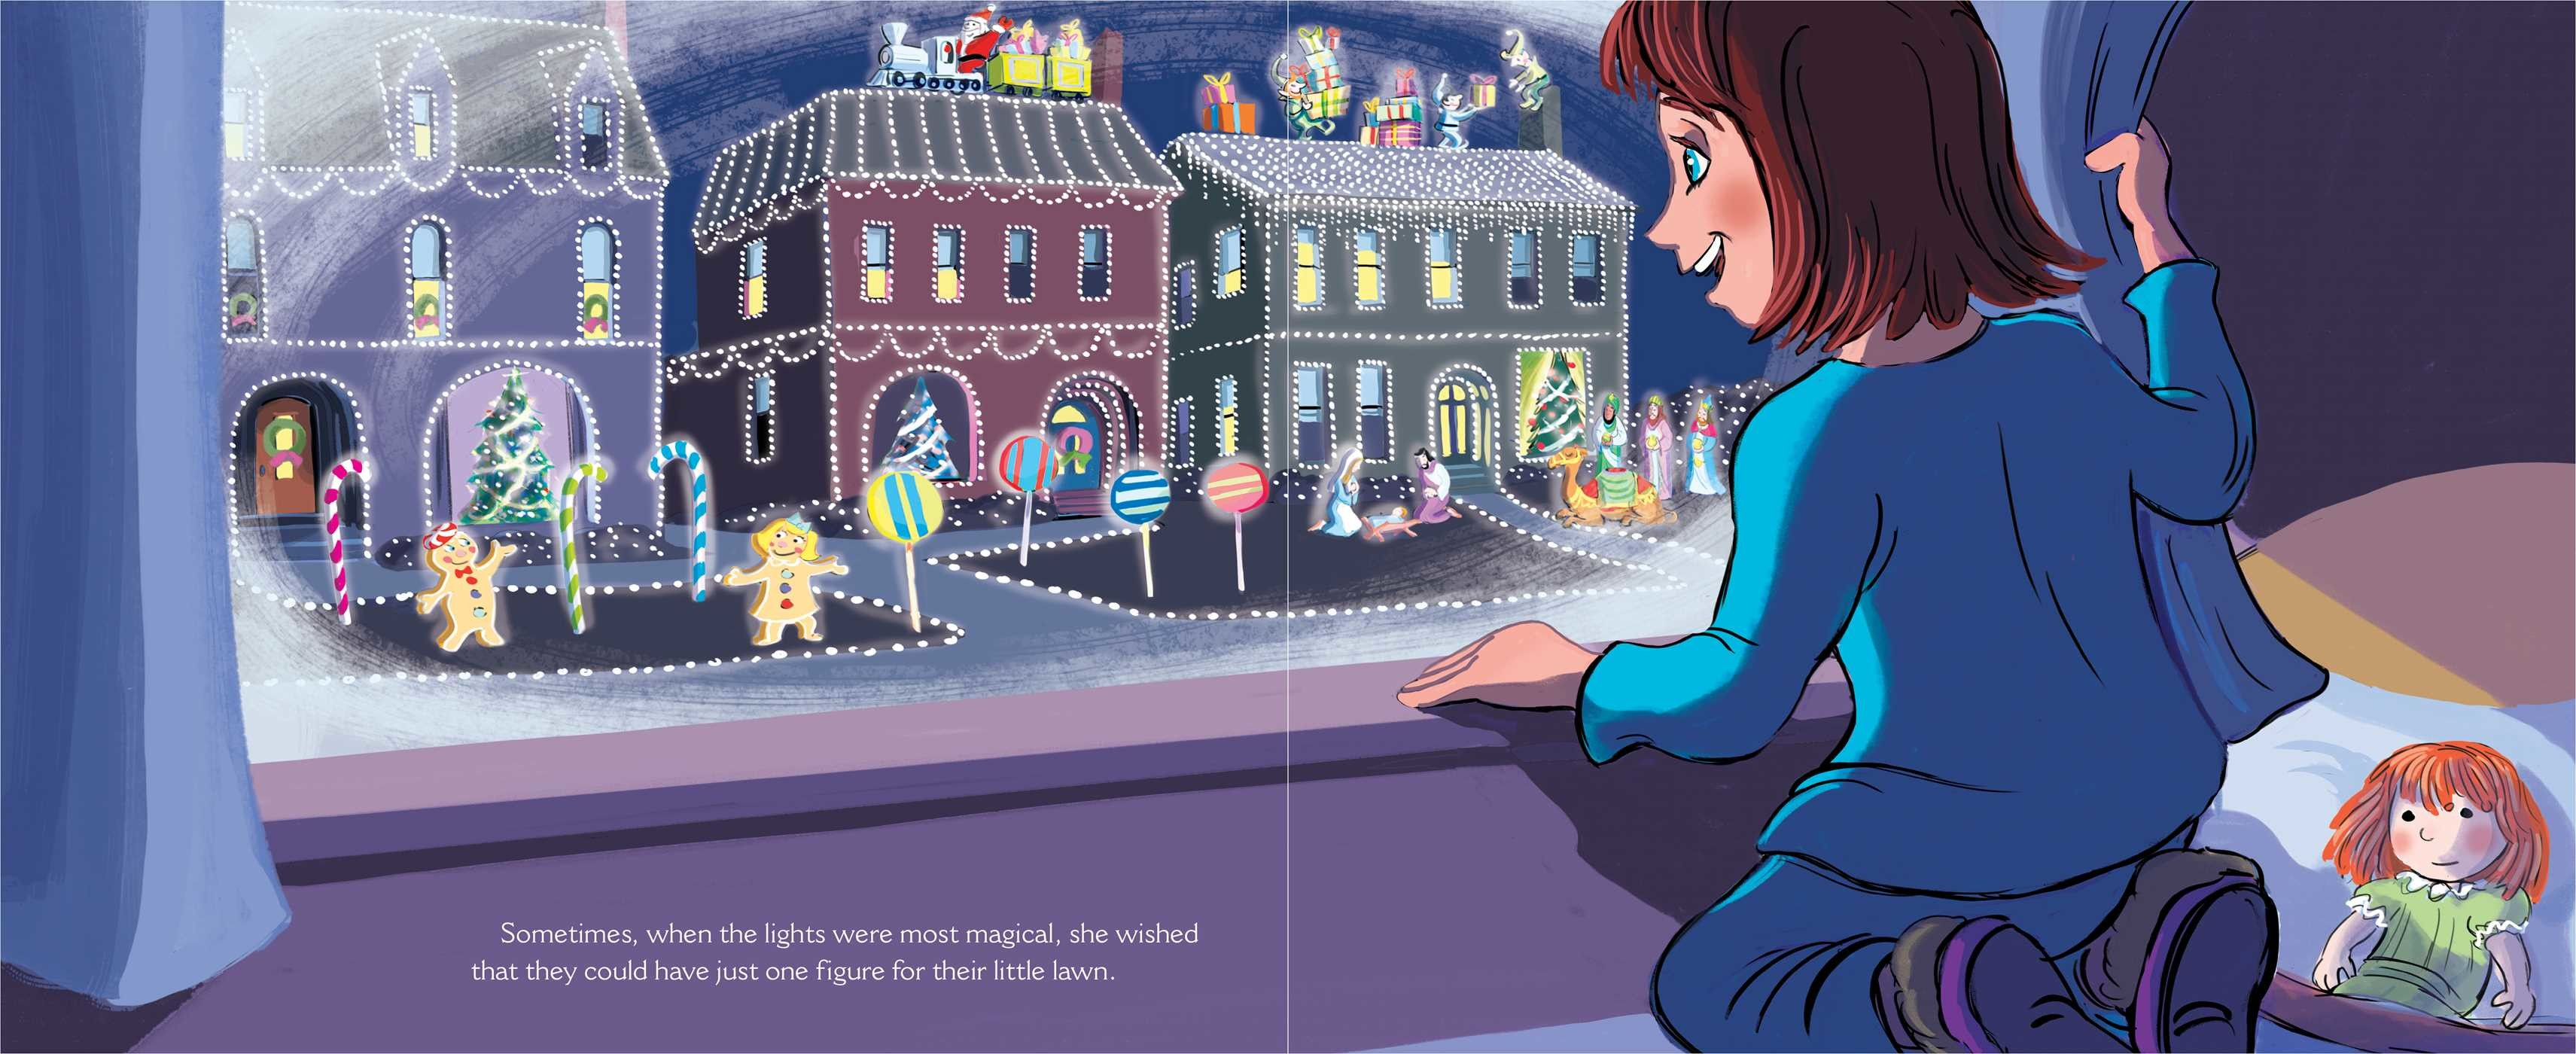 Candy-cane-lane-9781481456616.in02